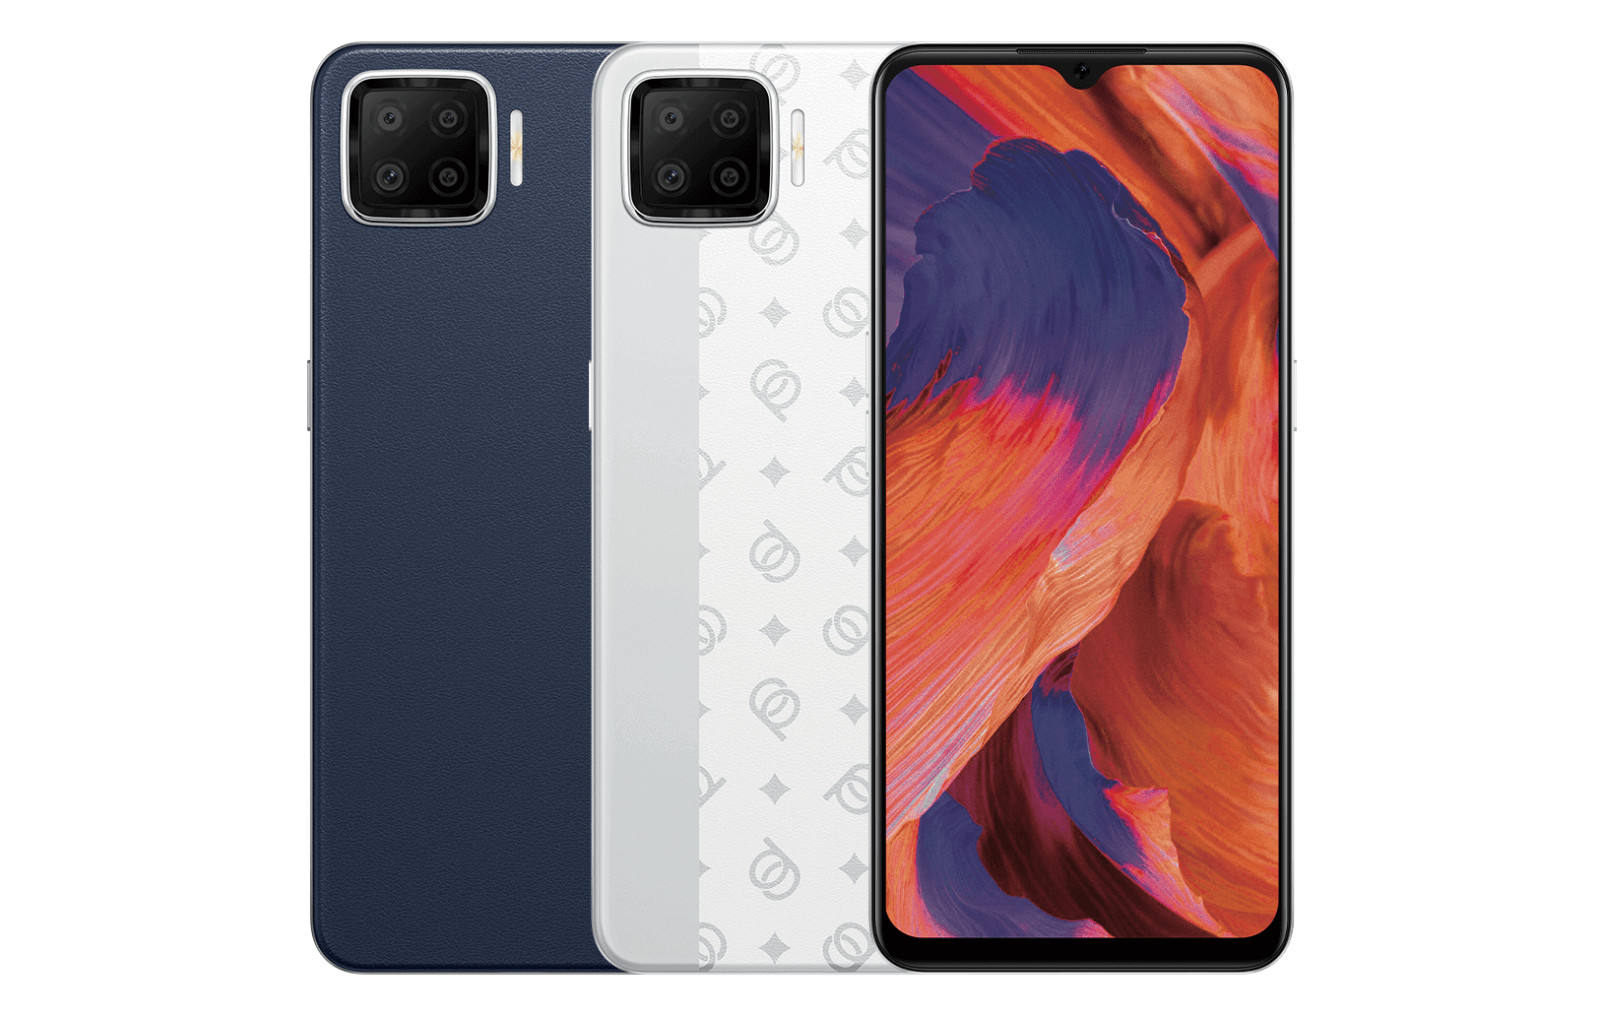 OPPO выпустила смартфон OPPO A73 (OPPO A73 Navy Blue and Classic Silver)